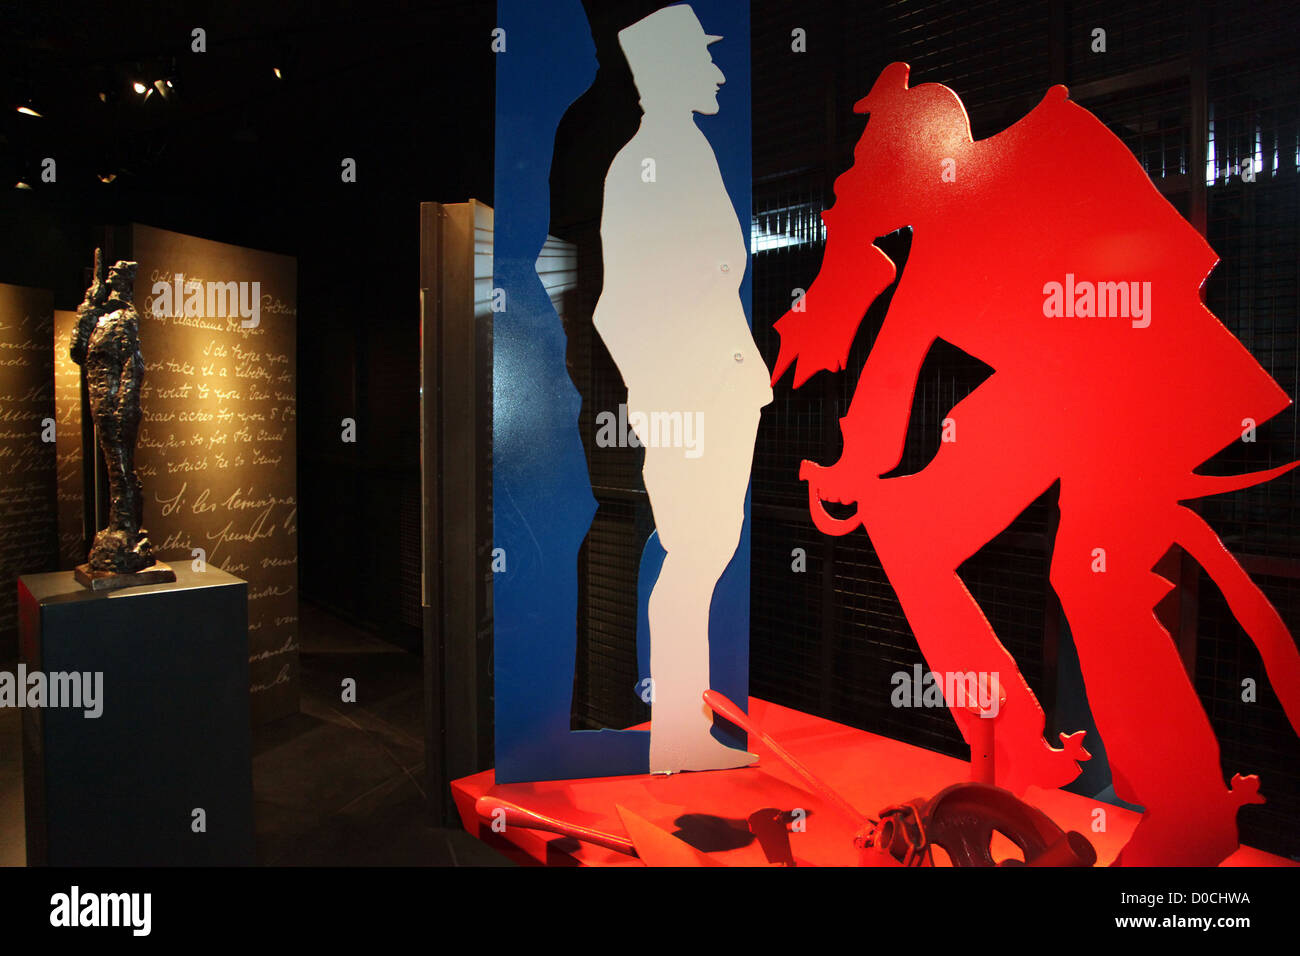 SCULPTURE IN REFERENCE TO THE DREYFUS AFFAIR MUSEUM OF BRITTANY RENNES ILLE-ET-VILAINE (35) FRANCE - Stock Image